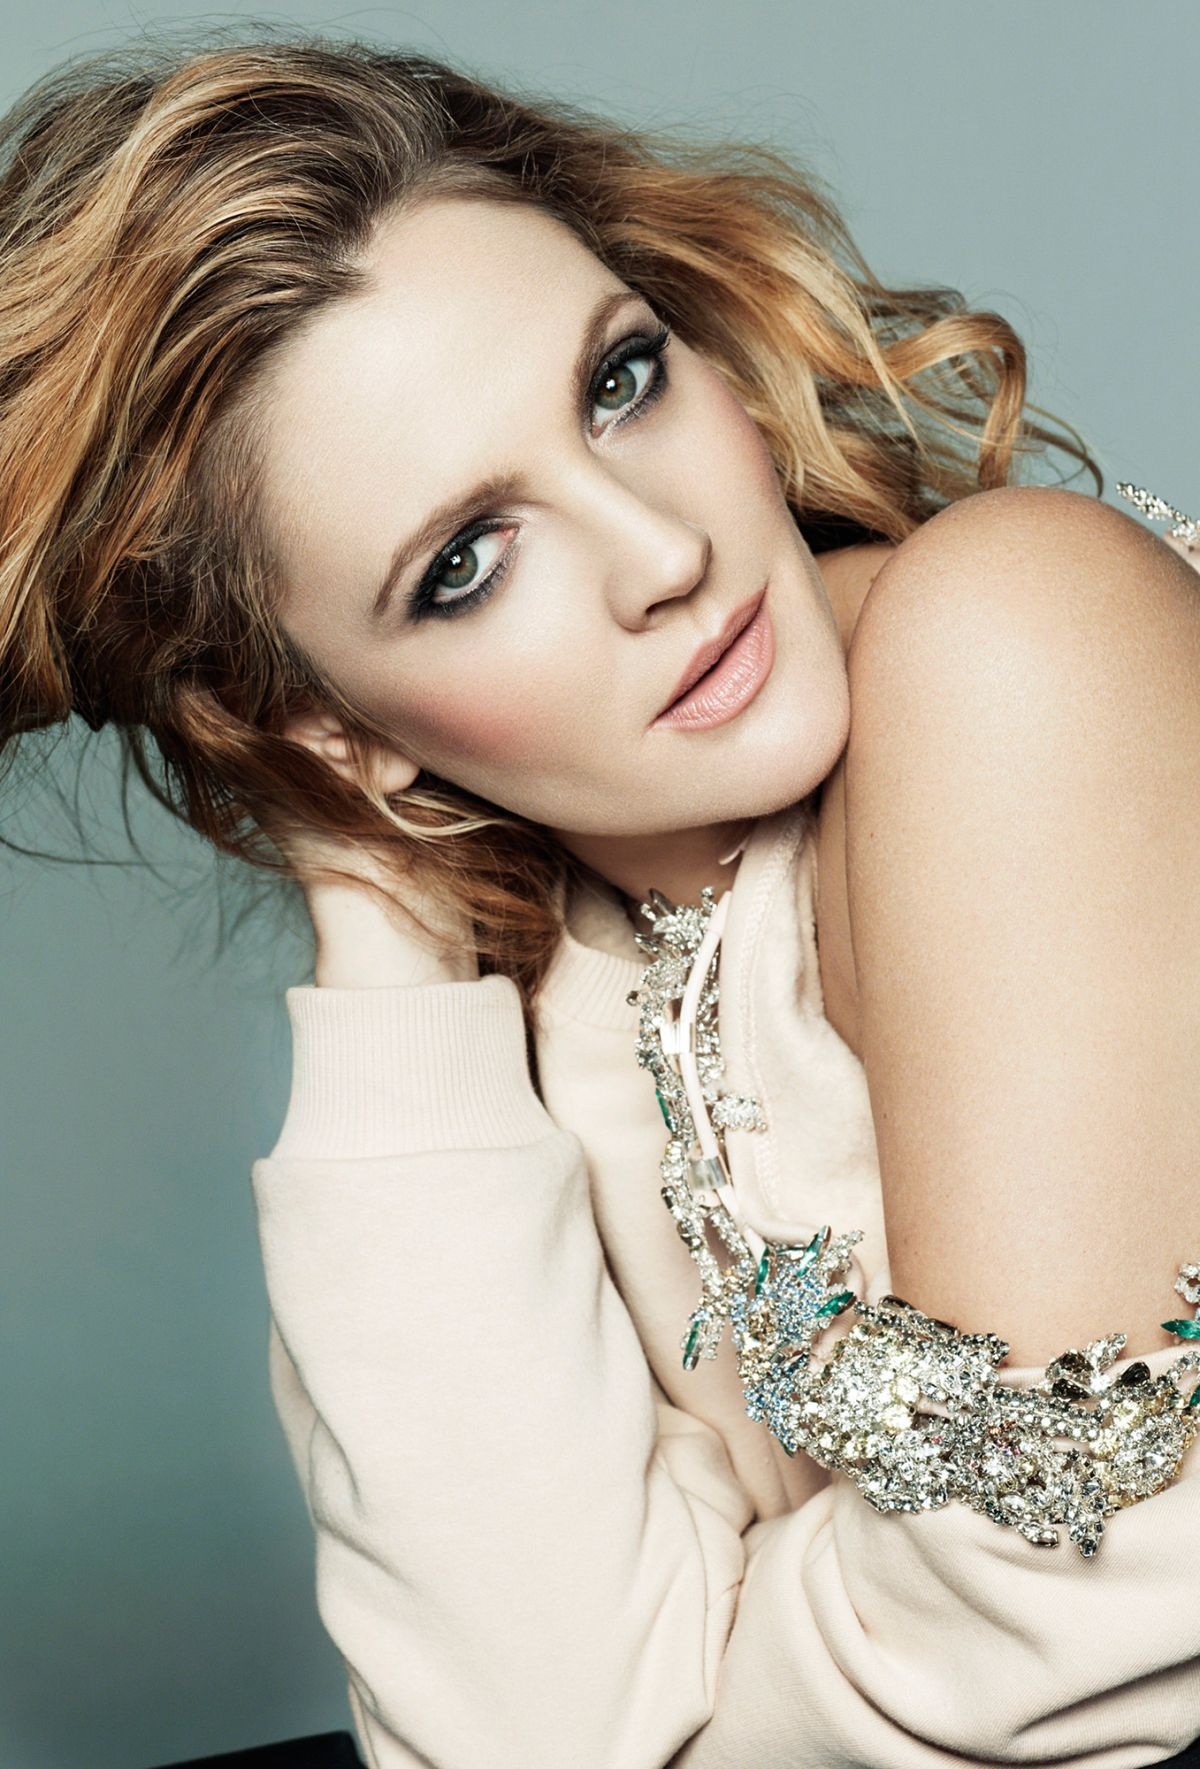 DREW BARRYMORE in Marie Claire Magazine  February 2014 IssueDrew Barrymore 2014